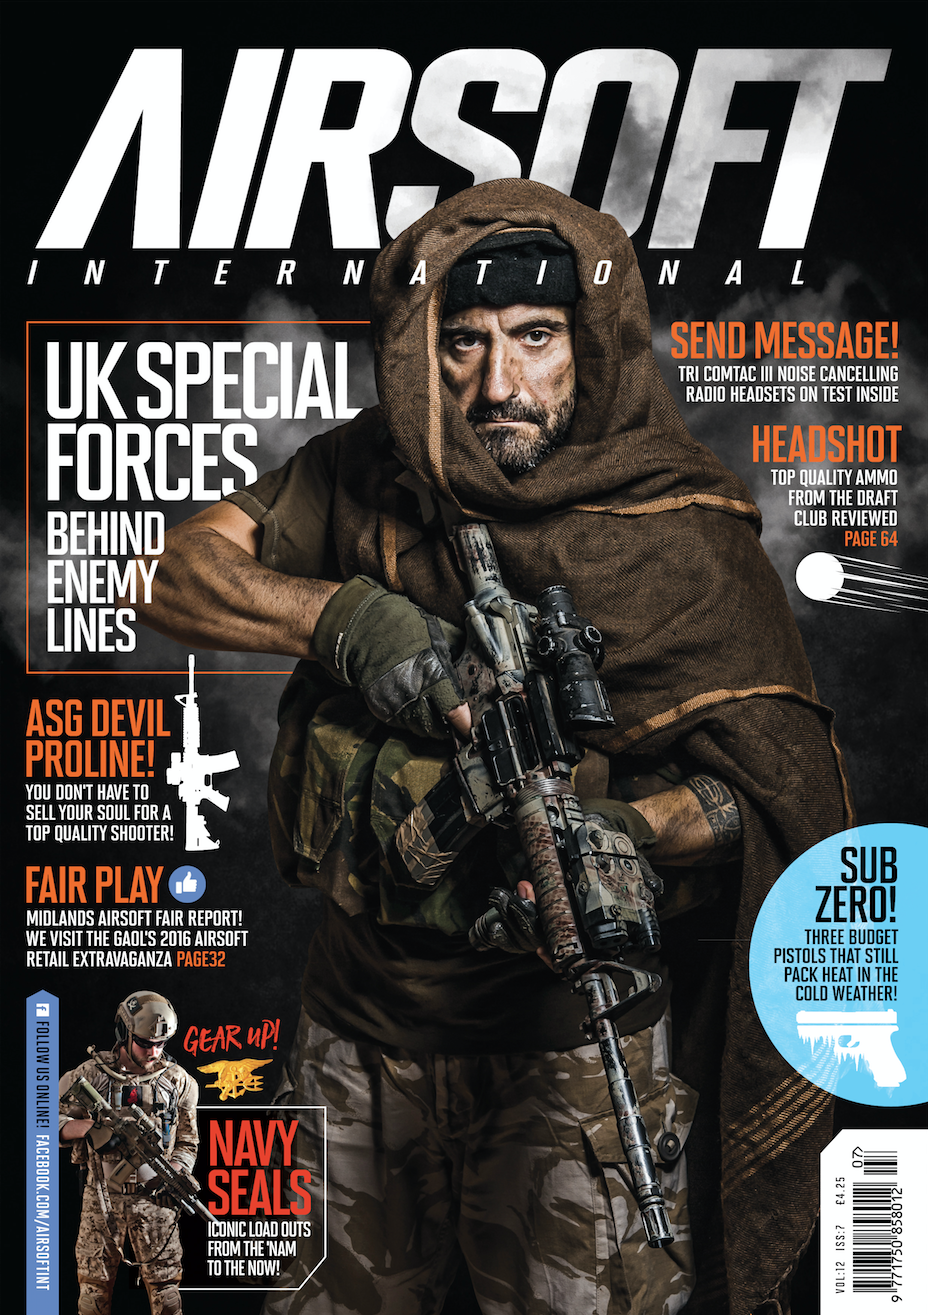 Portada de Black Bulls Ops en la revista inglesa AIRSOFT INTERNATIONAL